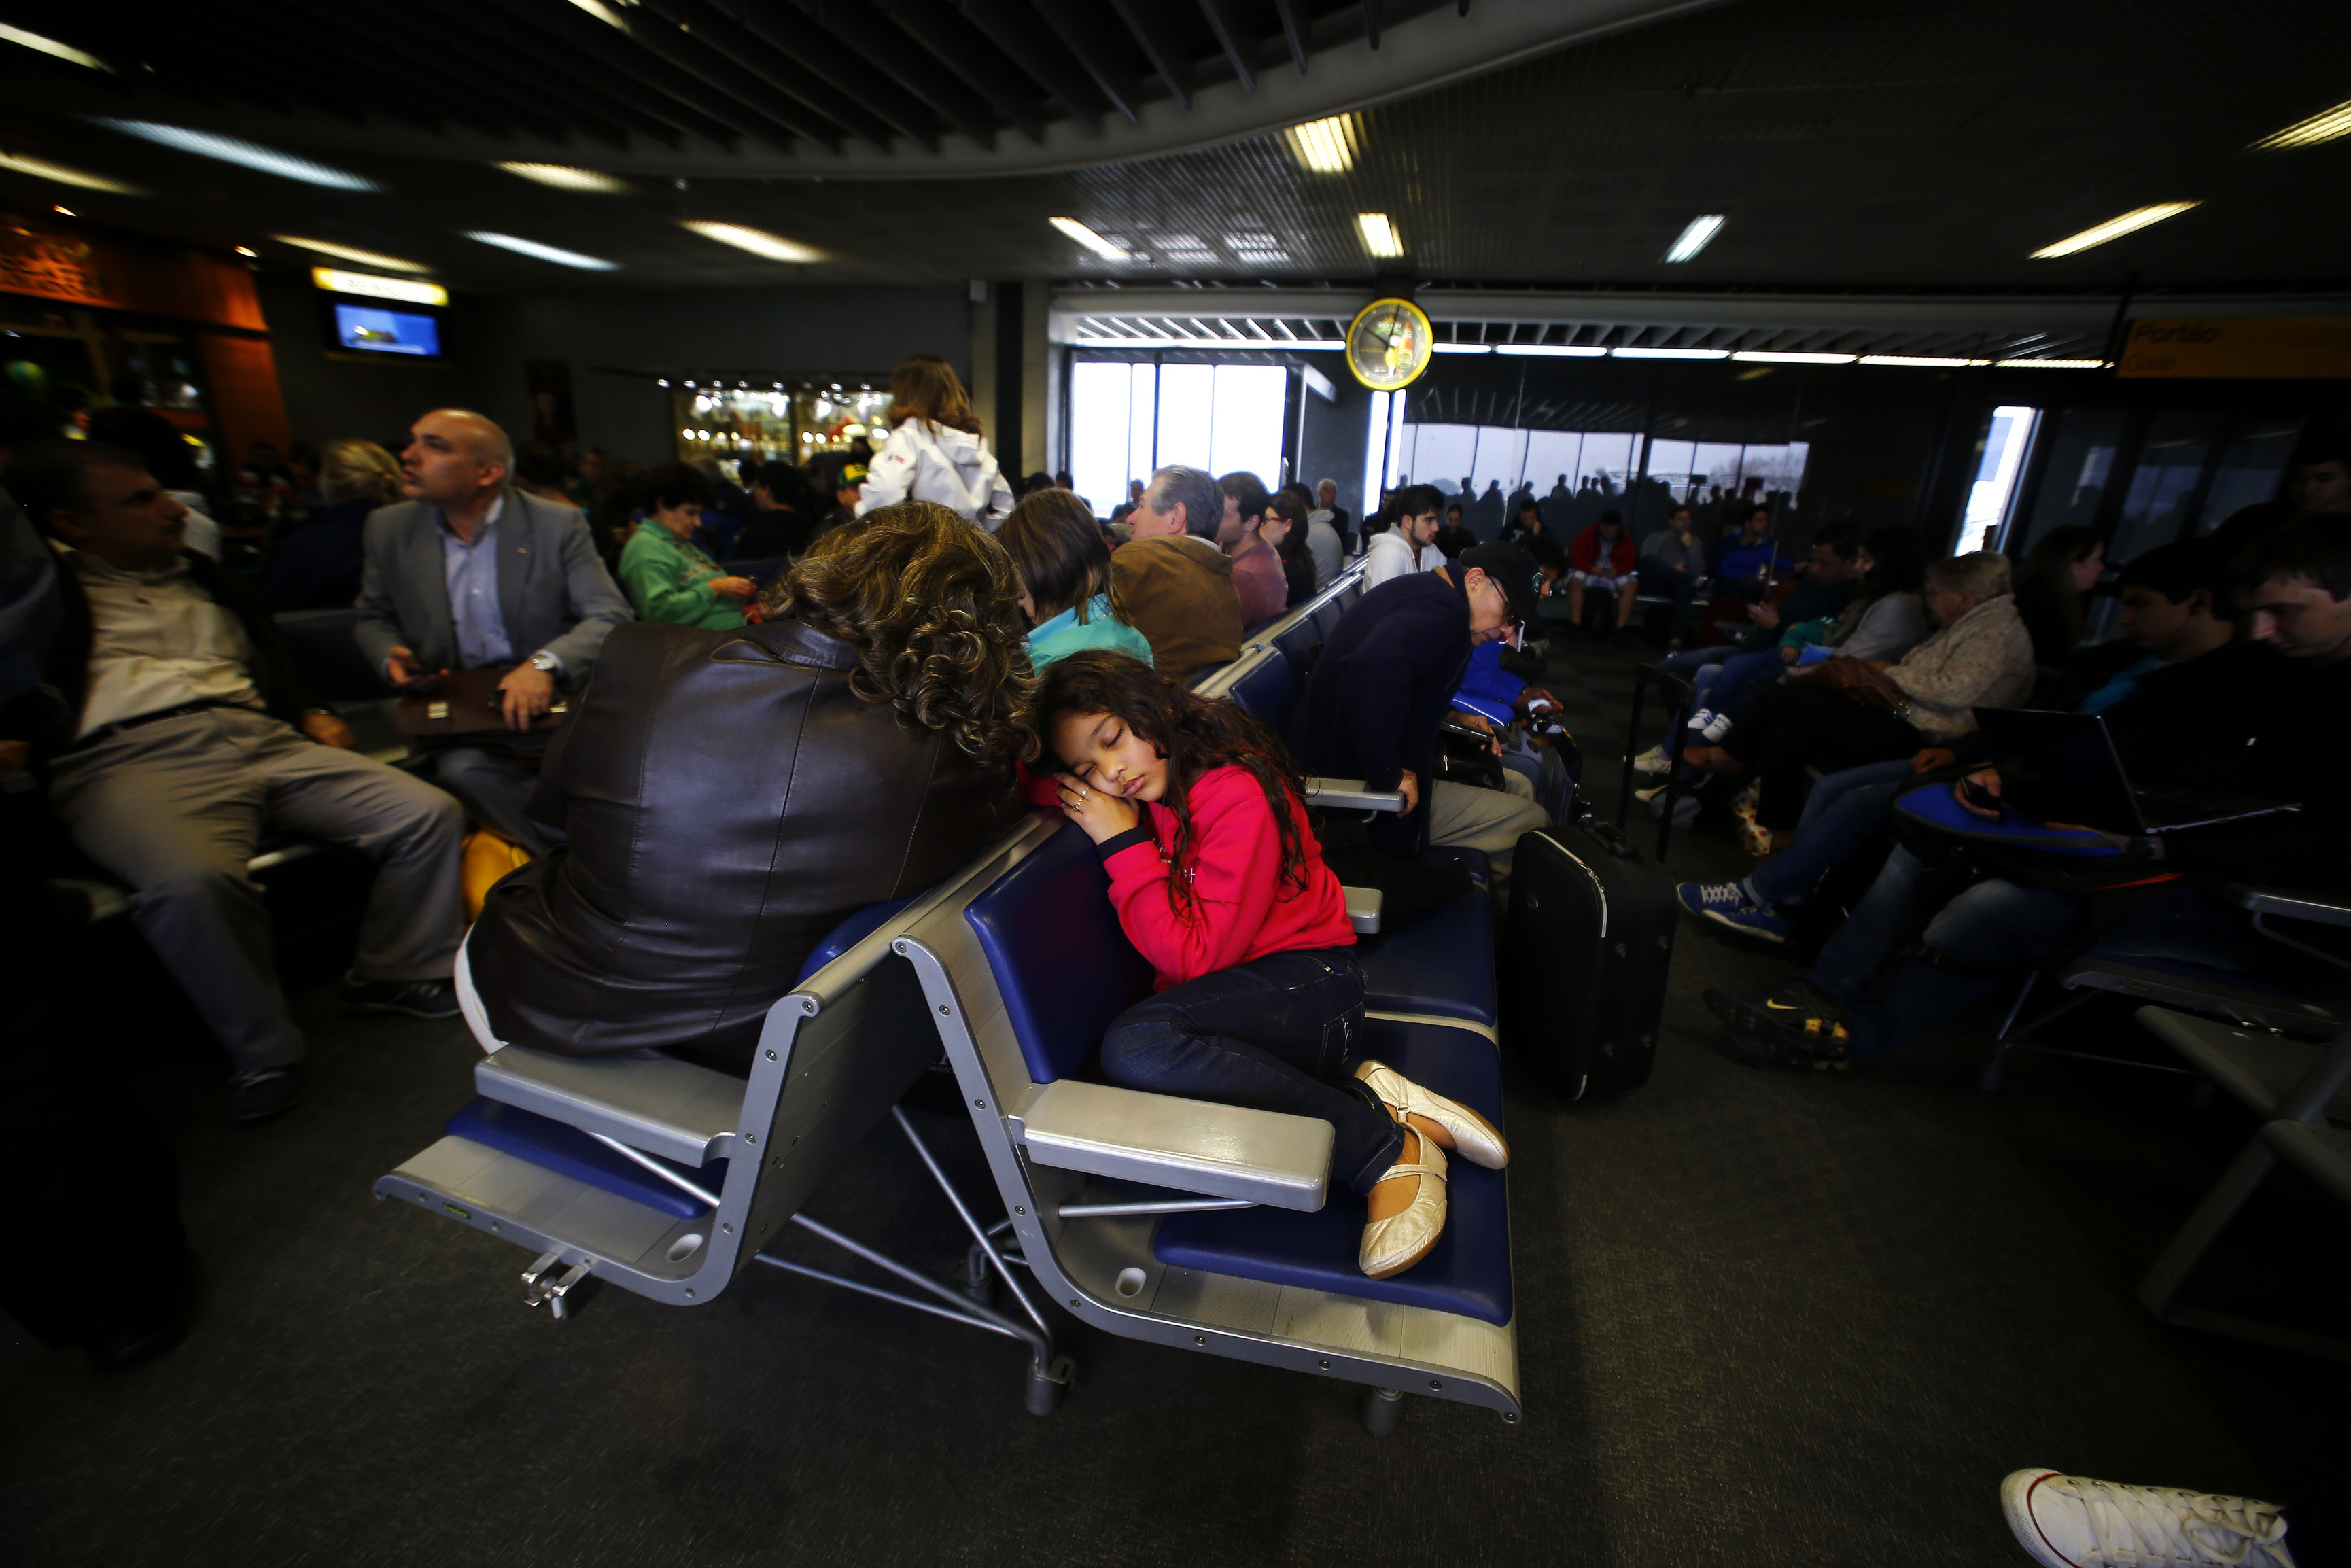 Passengers wait for their delayed flights at Alfonso Pena airport in Curitiba city.